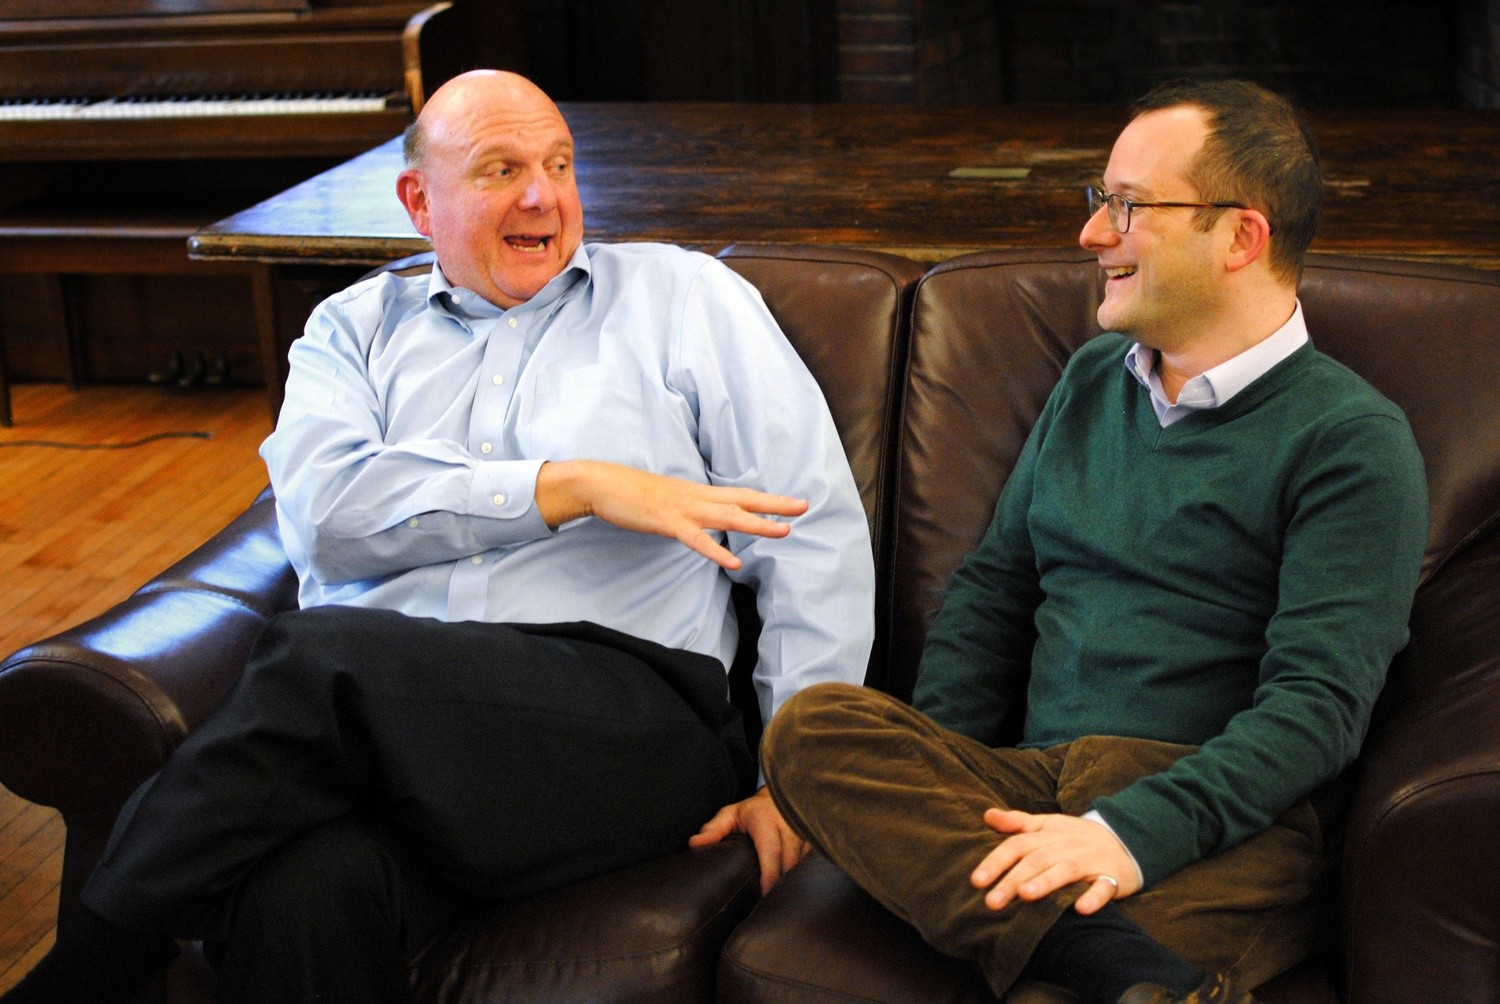 Former Microsoft CEO Steve A. Ballmer '77, left, jokes with with Harvard Computer Science Area Dean David C. Parkes during an interview with The Crimson on Wednesday regarding his donation to the computer science division.